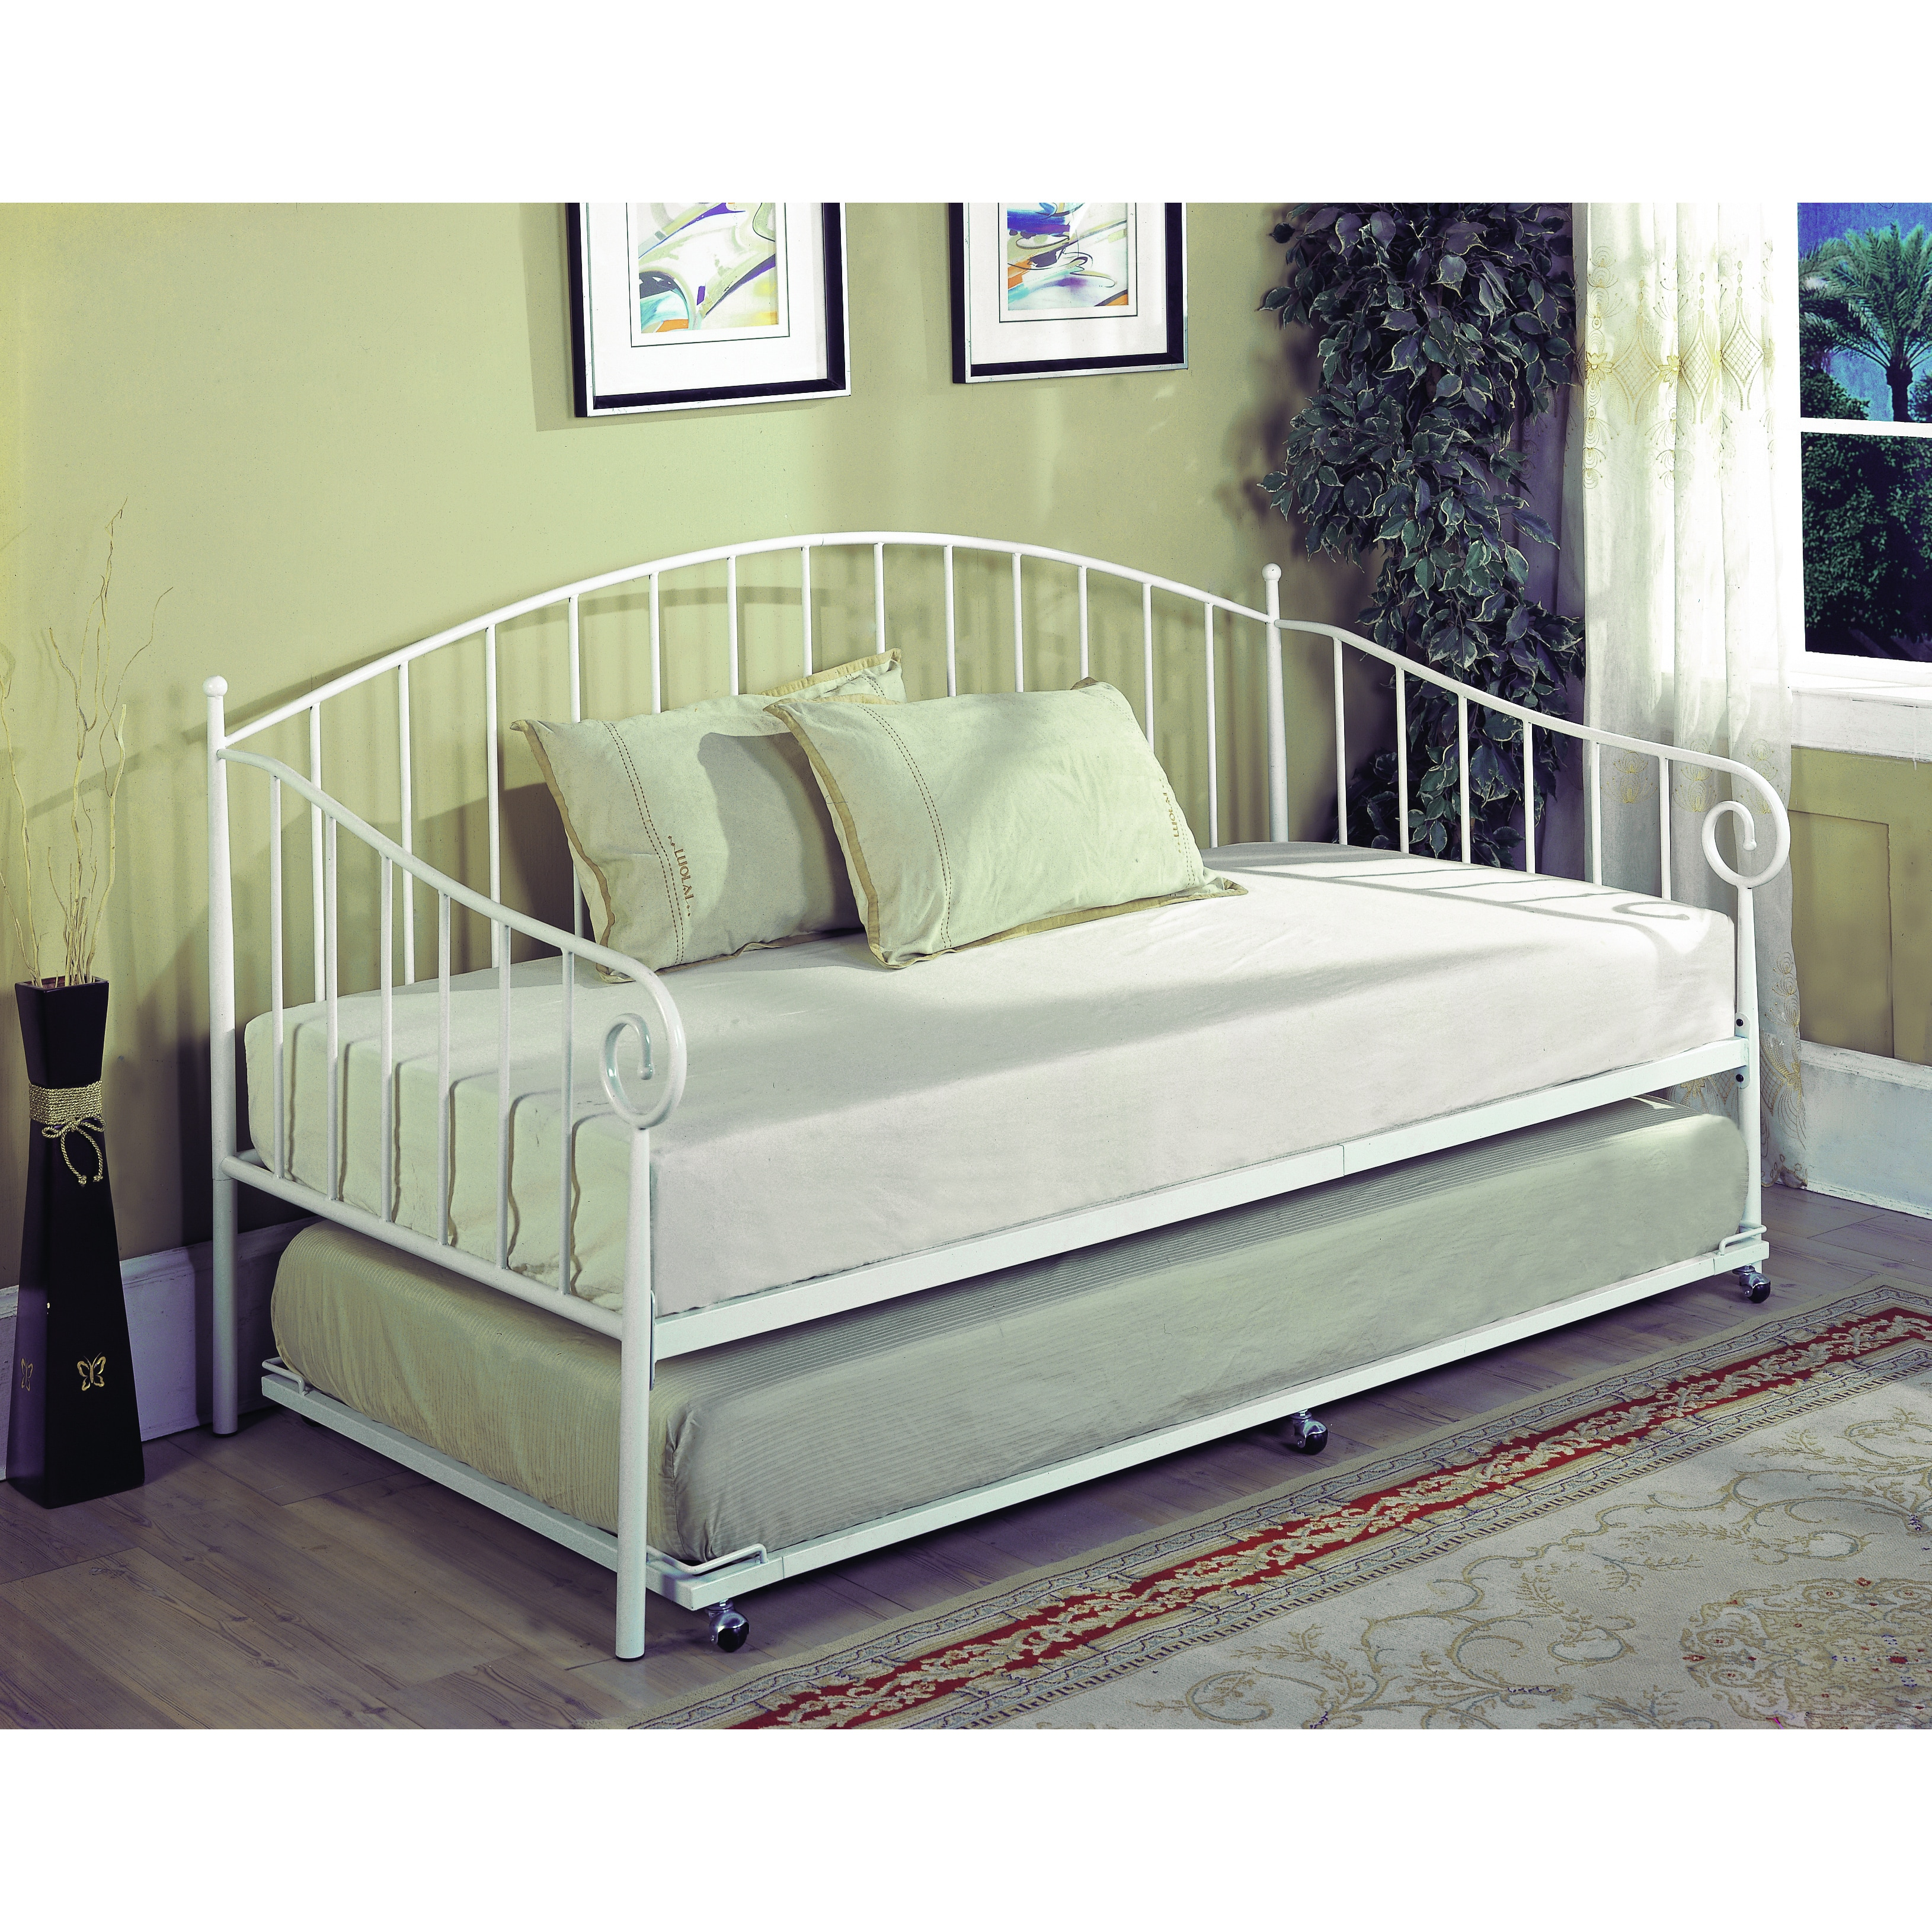 K&B BT01-WH White Finish Day Bed, Size Twin